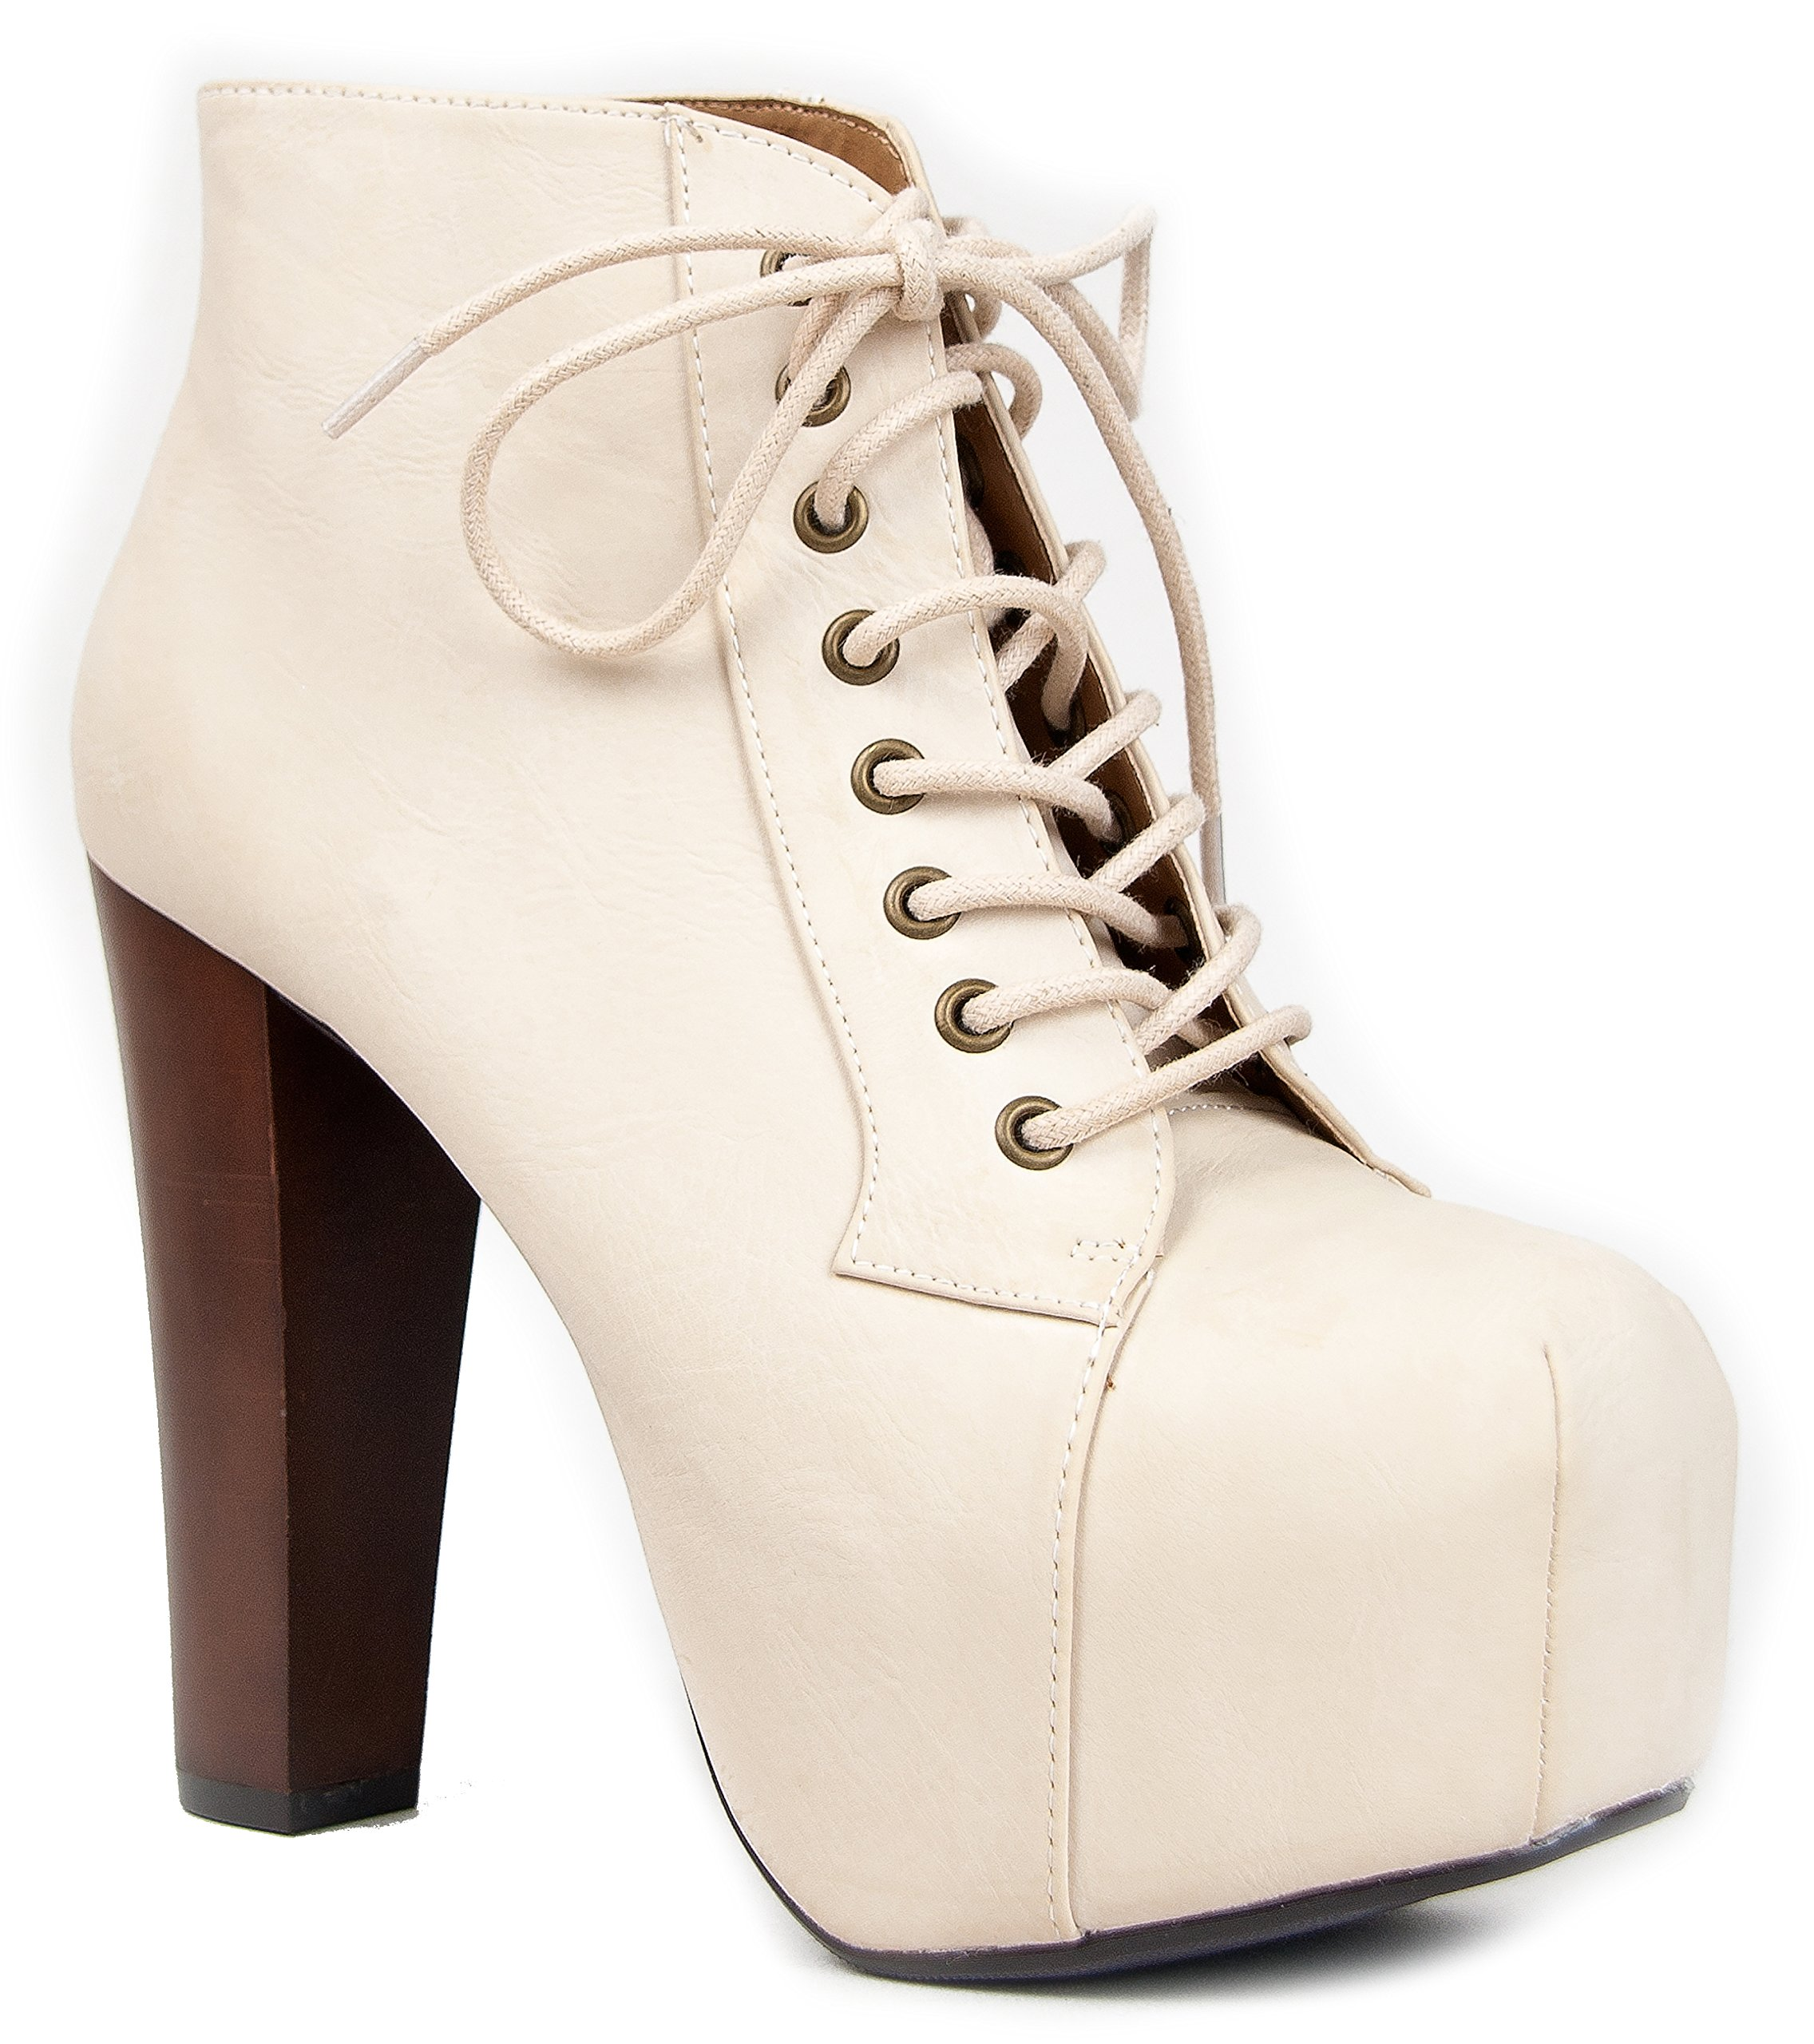 Speed Limit 98 ROSA Designer Inspired Lita Style Chunky High Heel Lace Up Ankle Boot Bootie, 8.5, Off-White by Speed Limit 98